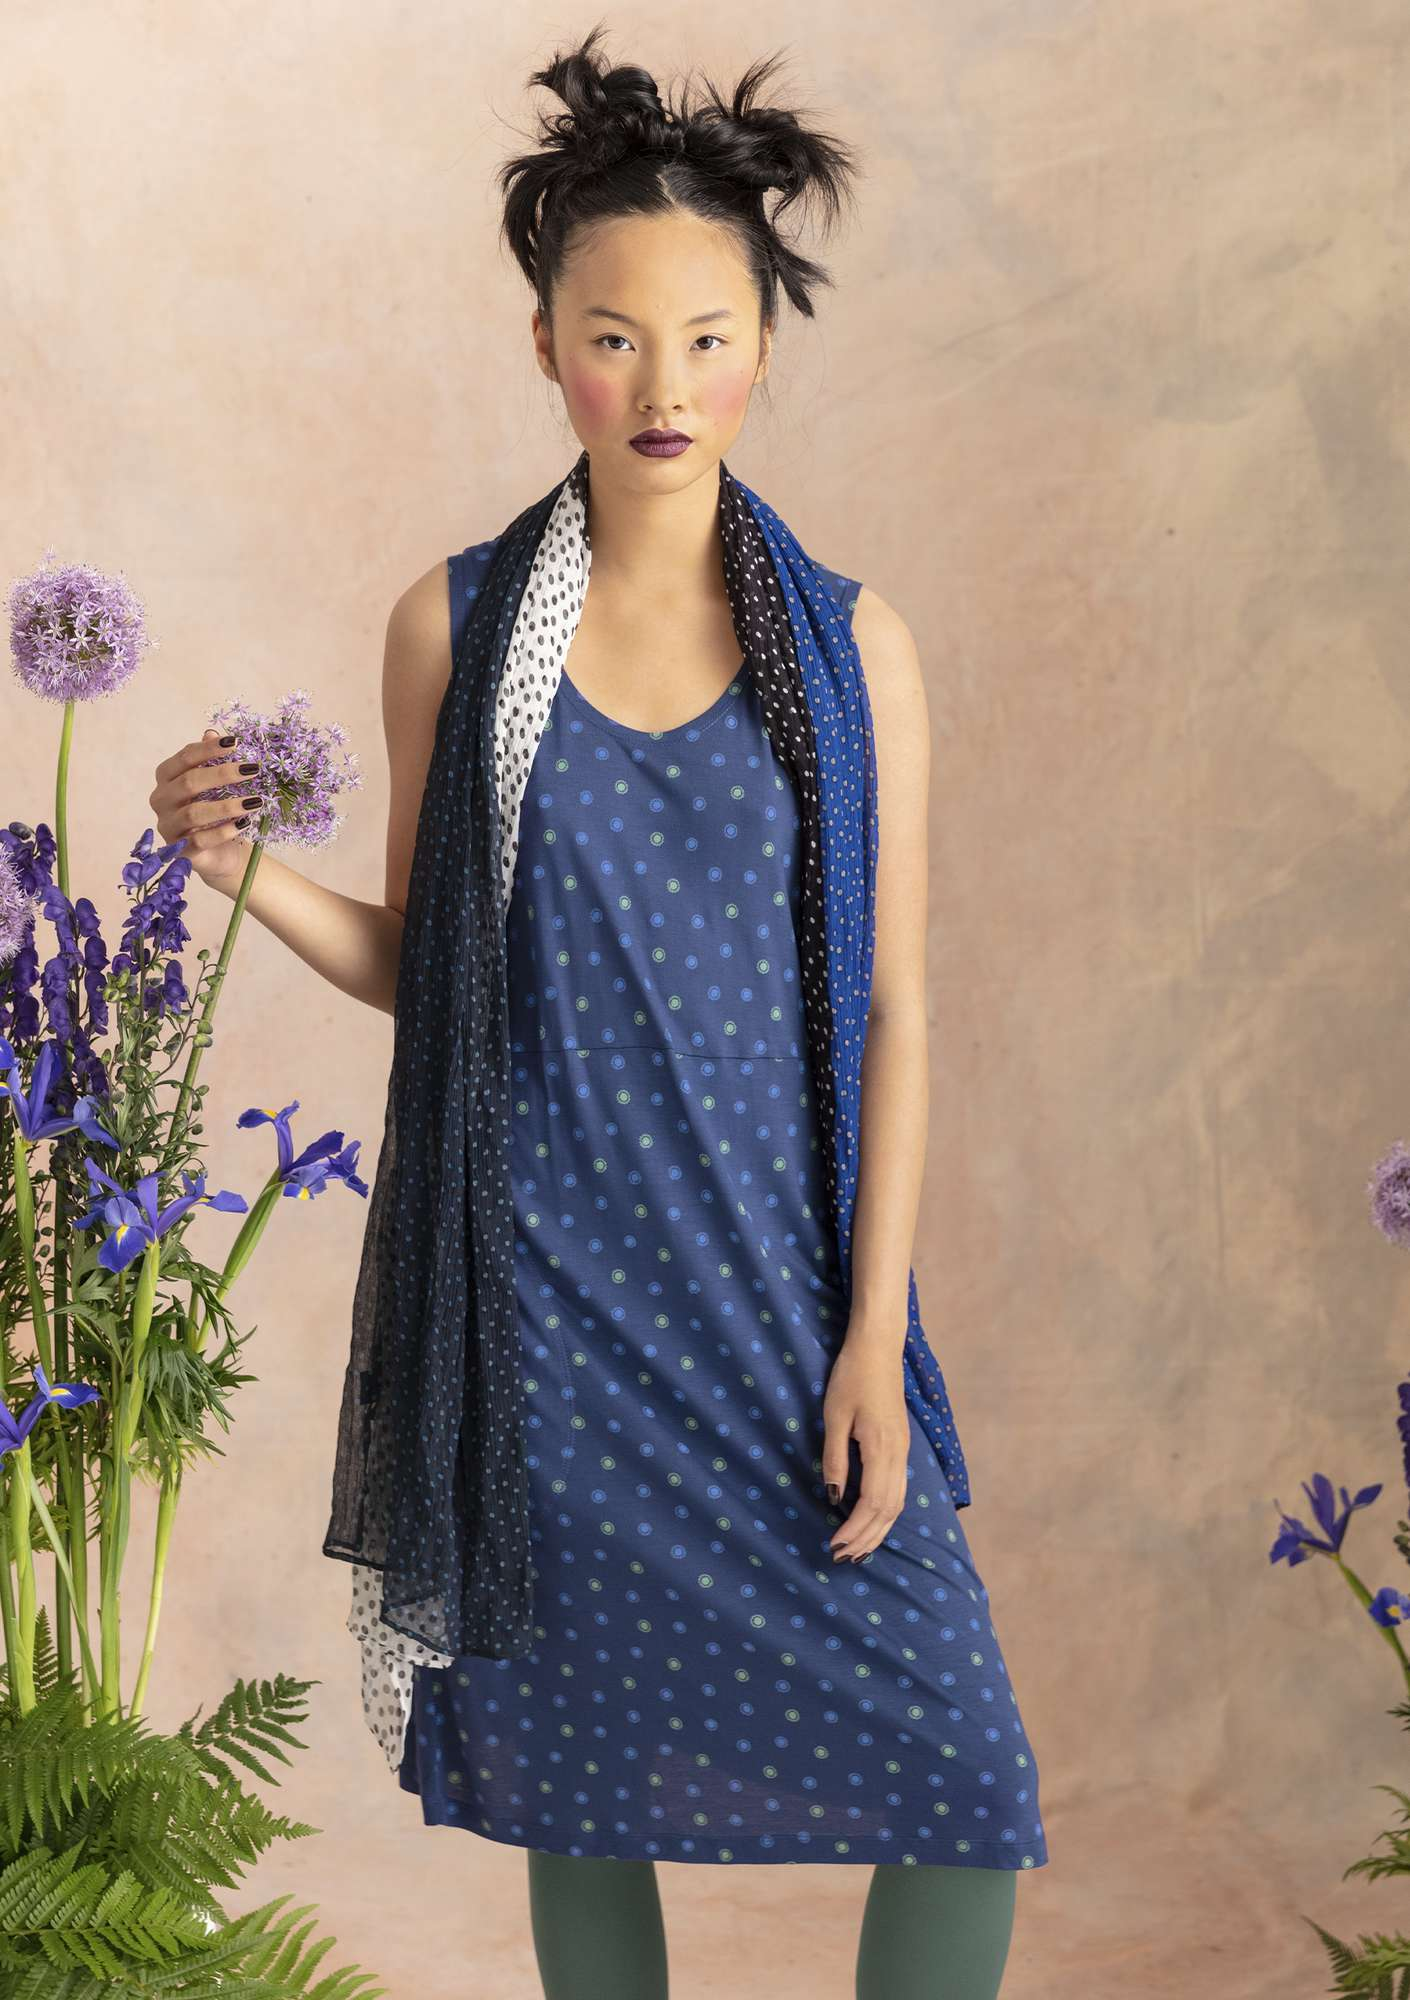 """Twinkle"" dress in modal midnight blue/patterned"